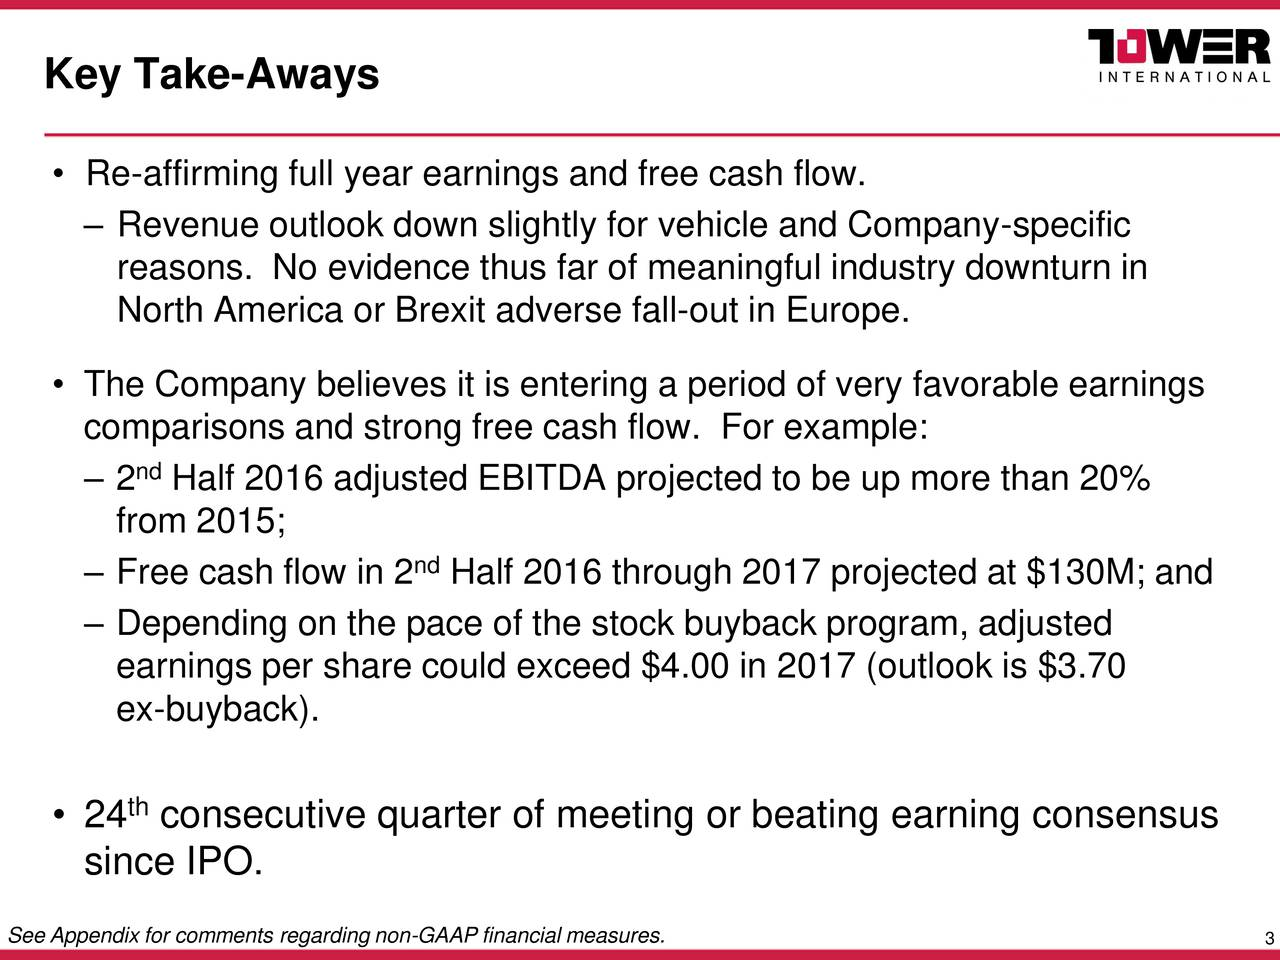 Re-affirming full year earnings and free cash flow. Revenue outlook down slightly for vehicle and Company-specific reasons. No evidence thus far of meaningful industry downturn in North America or Brexit adverse fall-out in Europe. The Company believes it is entering a period of very favorable earnings comparisons and strong free cash flow. For example: nd 2 Half 2016 adjusted EBITDA projected to be up more than 20% from 2015; nd Free cash flow in 2 Half 2016 through 2017 projected at $130M; and Depending on the pace of the stock buyback program, adjusted earnings per share could exceed $4.00 in 2017 (outlook is $3.70 ex-buyback). 24 consecutive quarter of meeting or beating earning consensus since IPO. See Appendix for comments regarding non-GAAP financial measures.